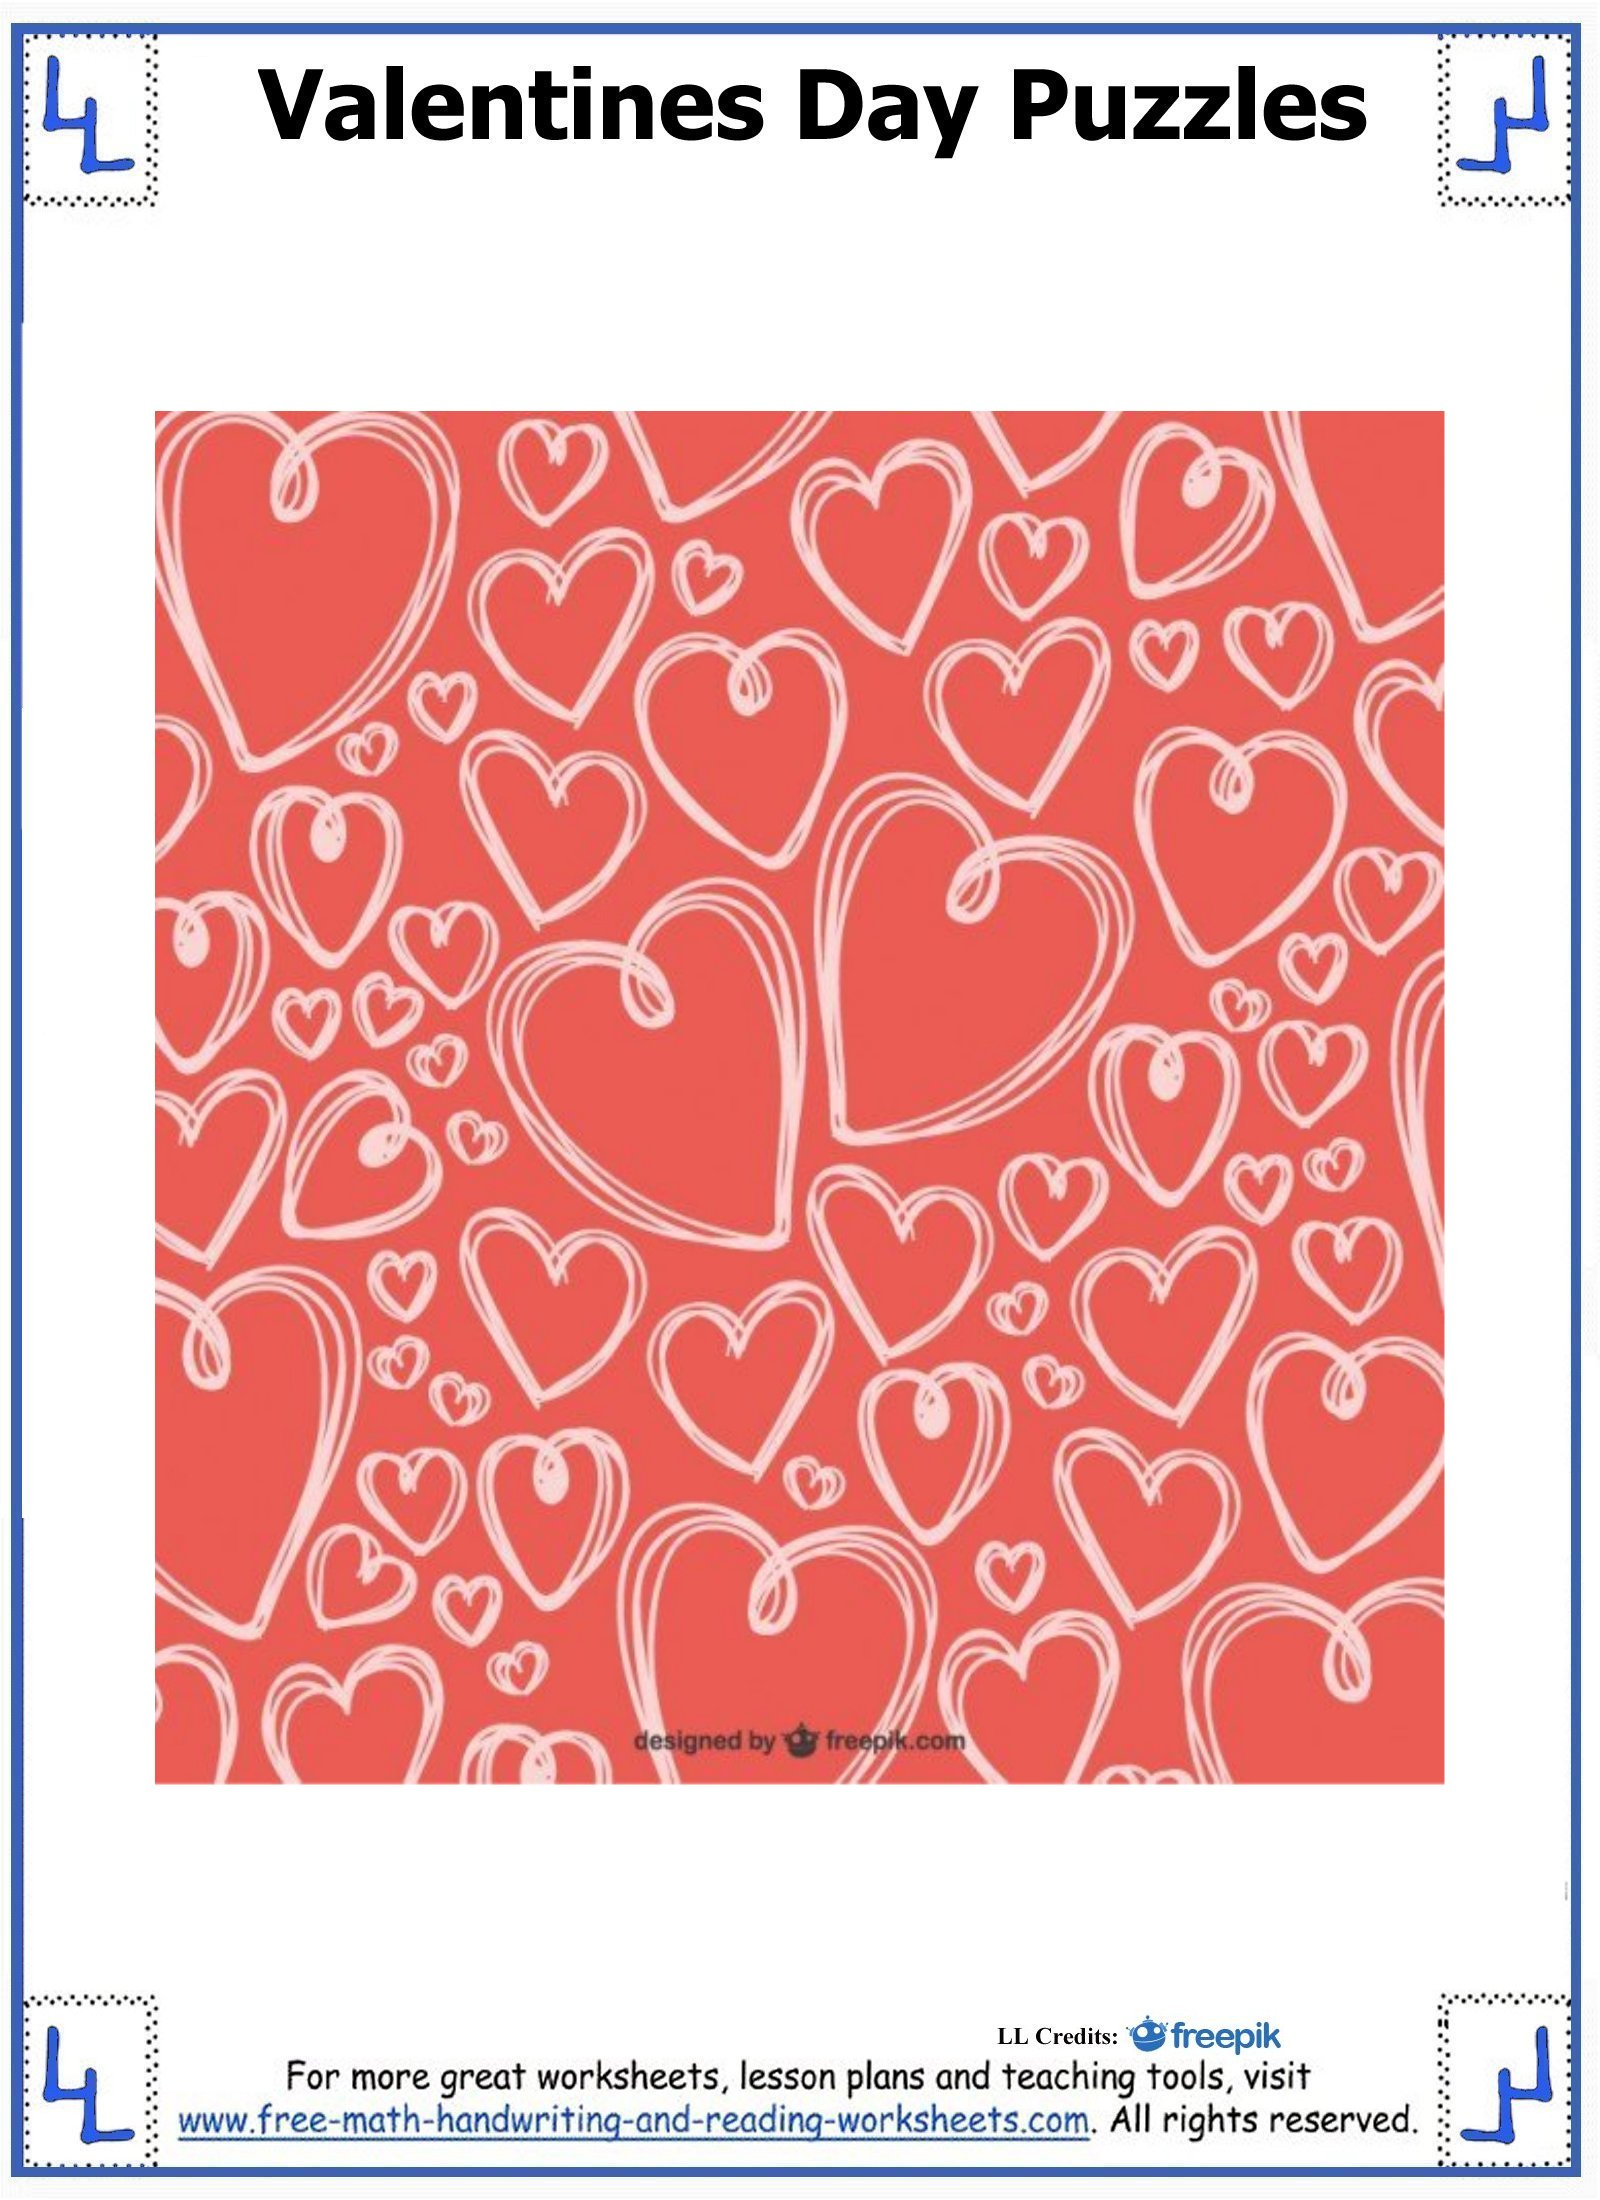 Valentine Day Puzzles Printable